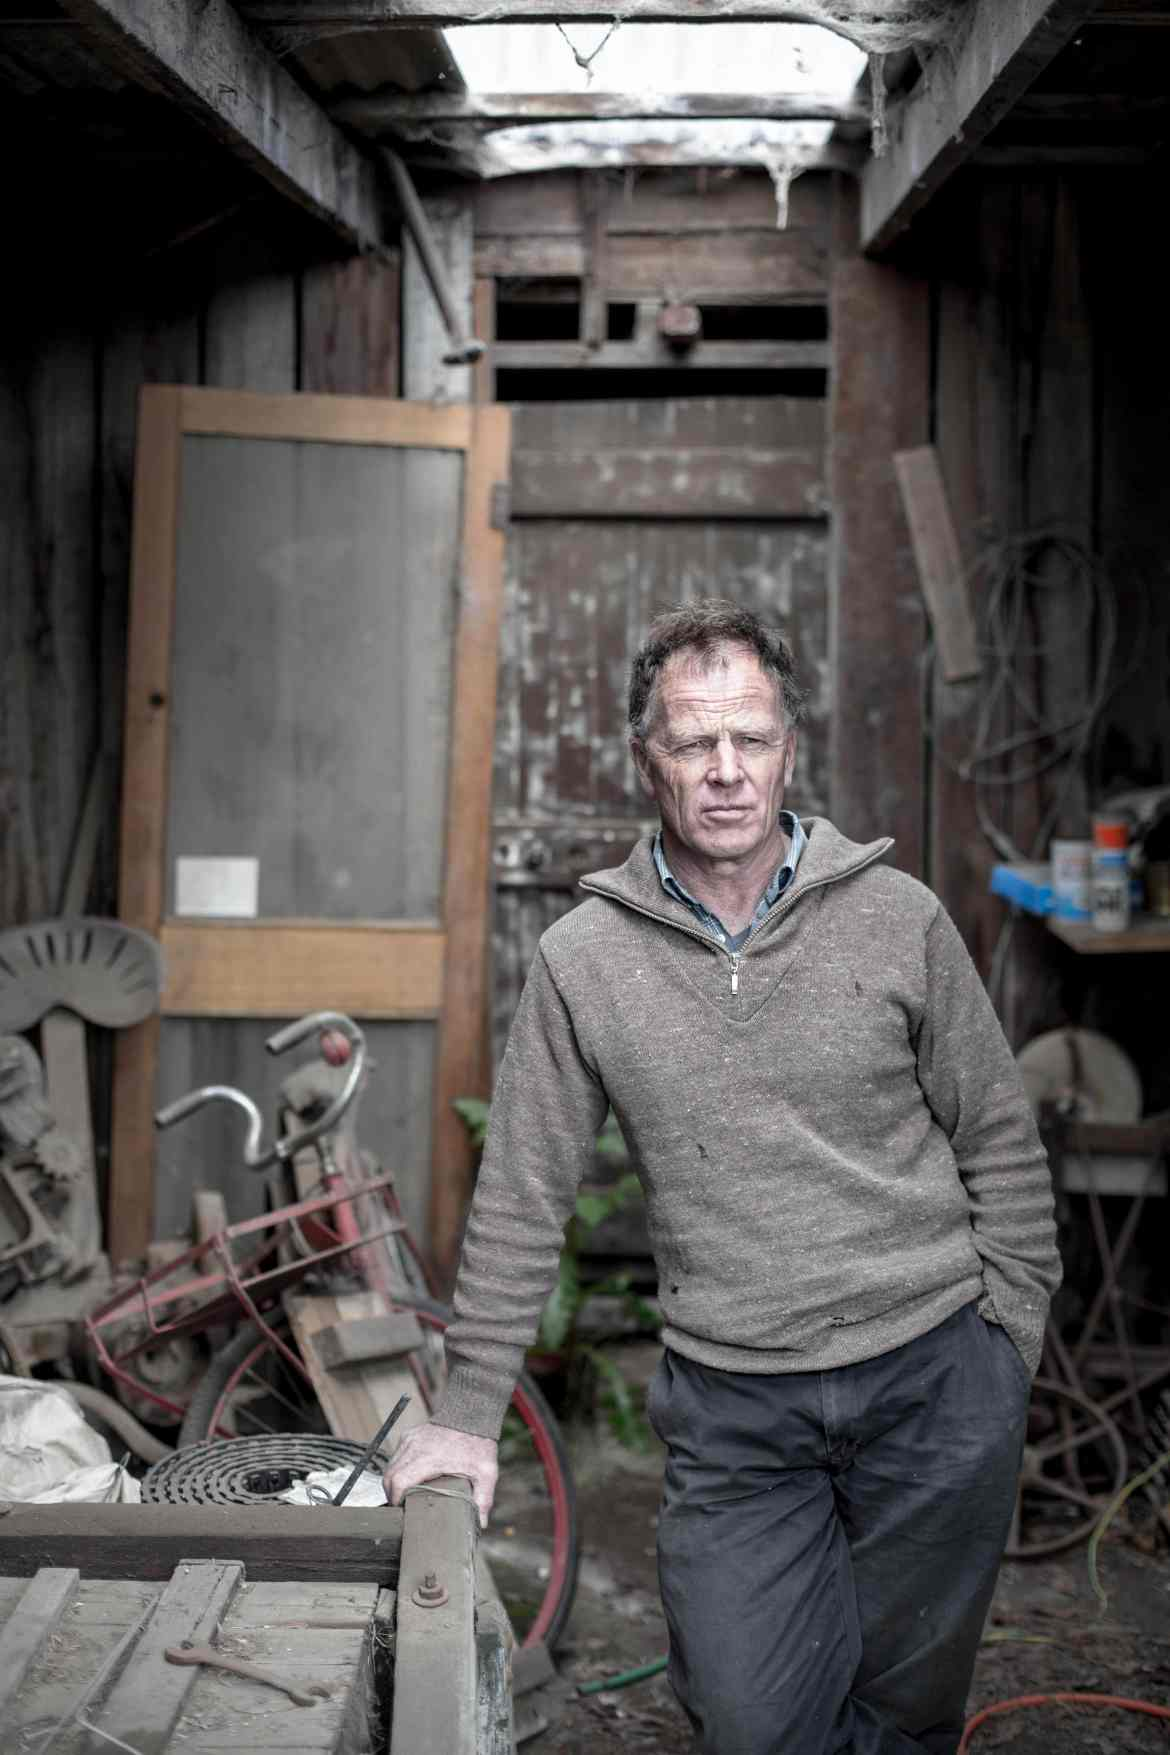 Portrait photography of a man in an old shed